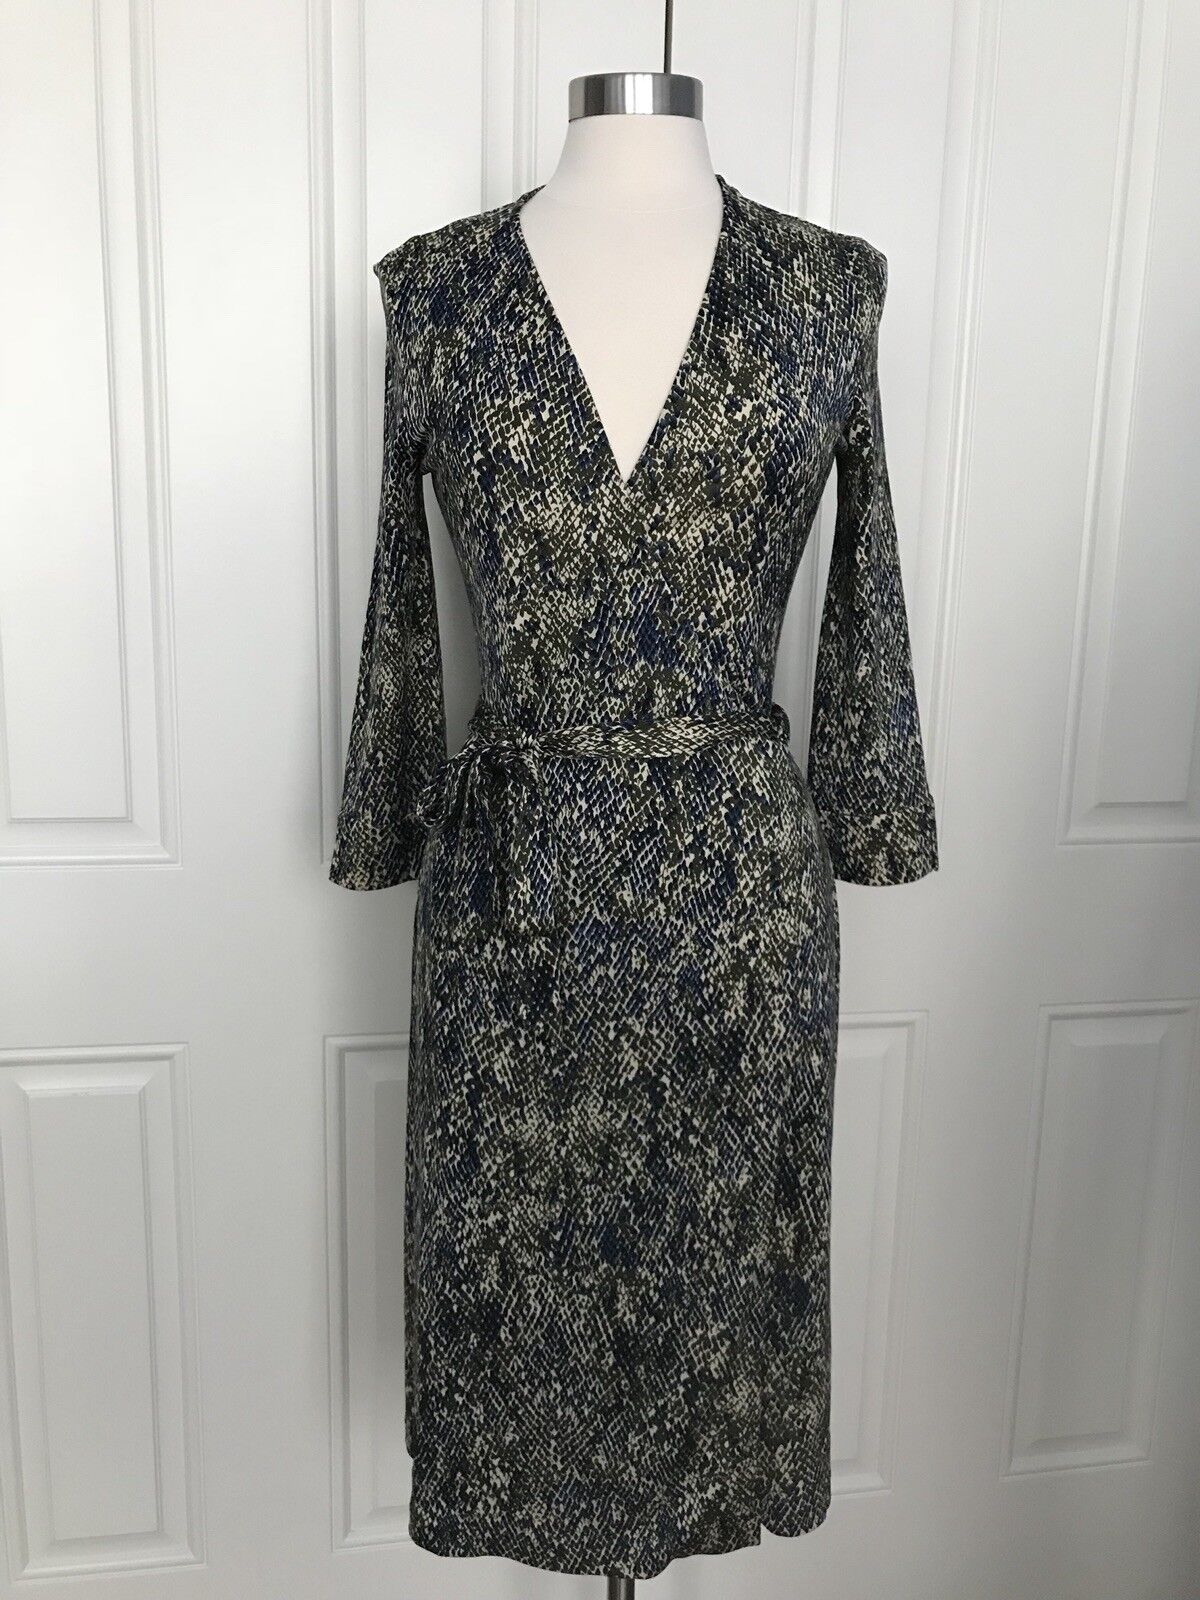 DVF vintage Julien animal print silk wrap dress 8 10 EUC